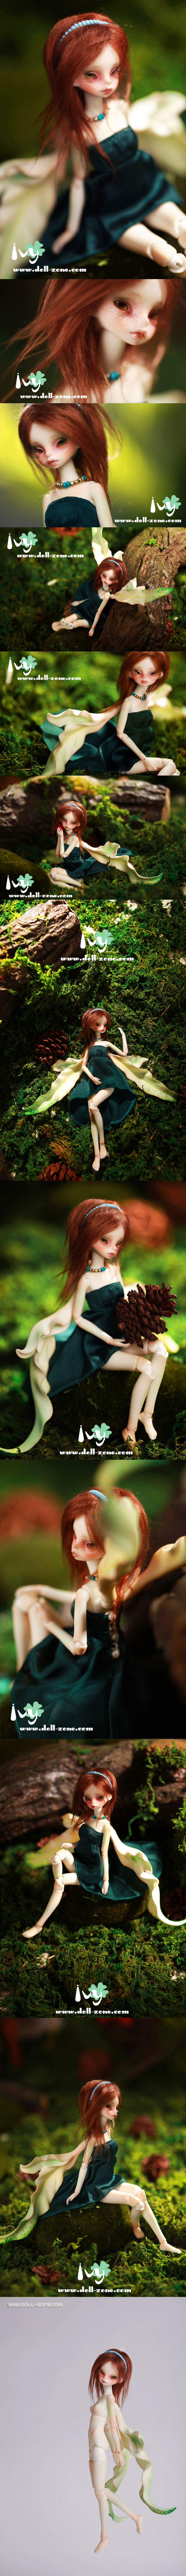 BJD Ivy 20cm Girl Ball-jointed Doll